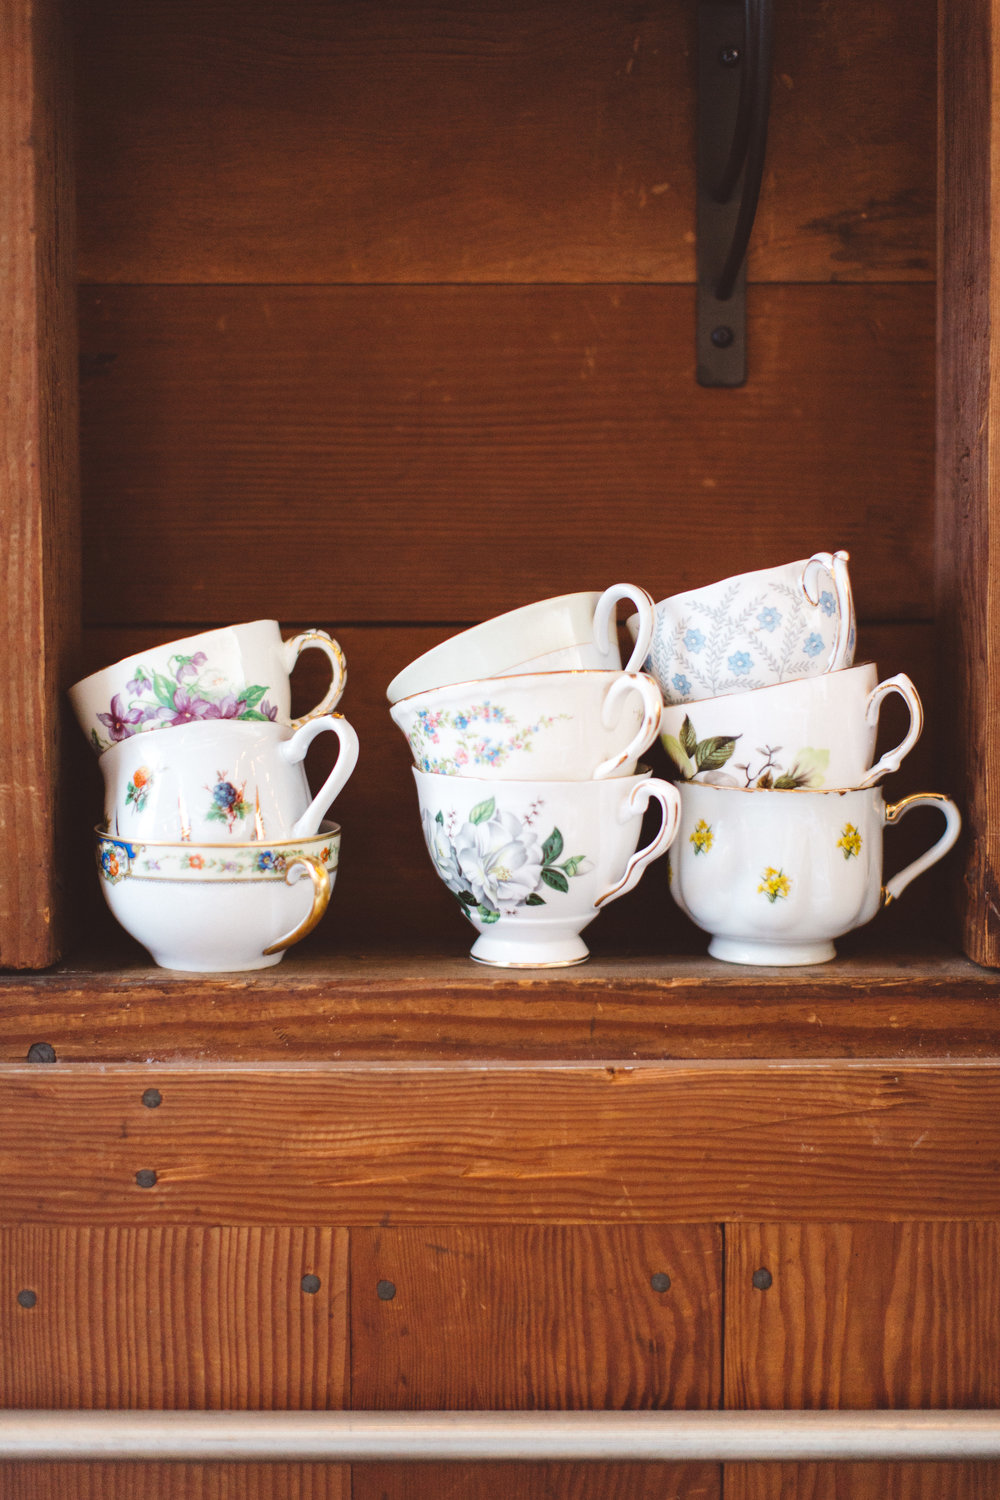 Pretty details like these teacups were everywhere.